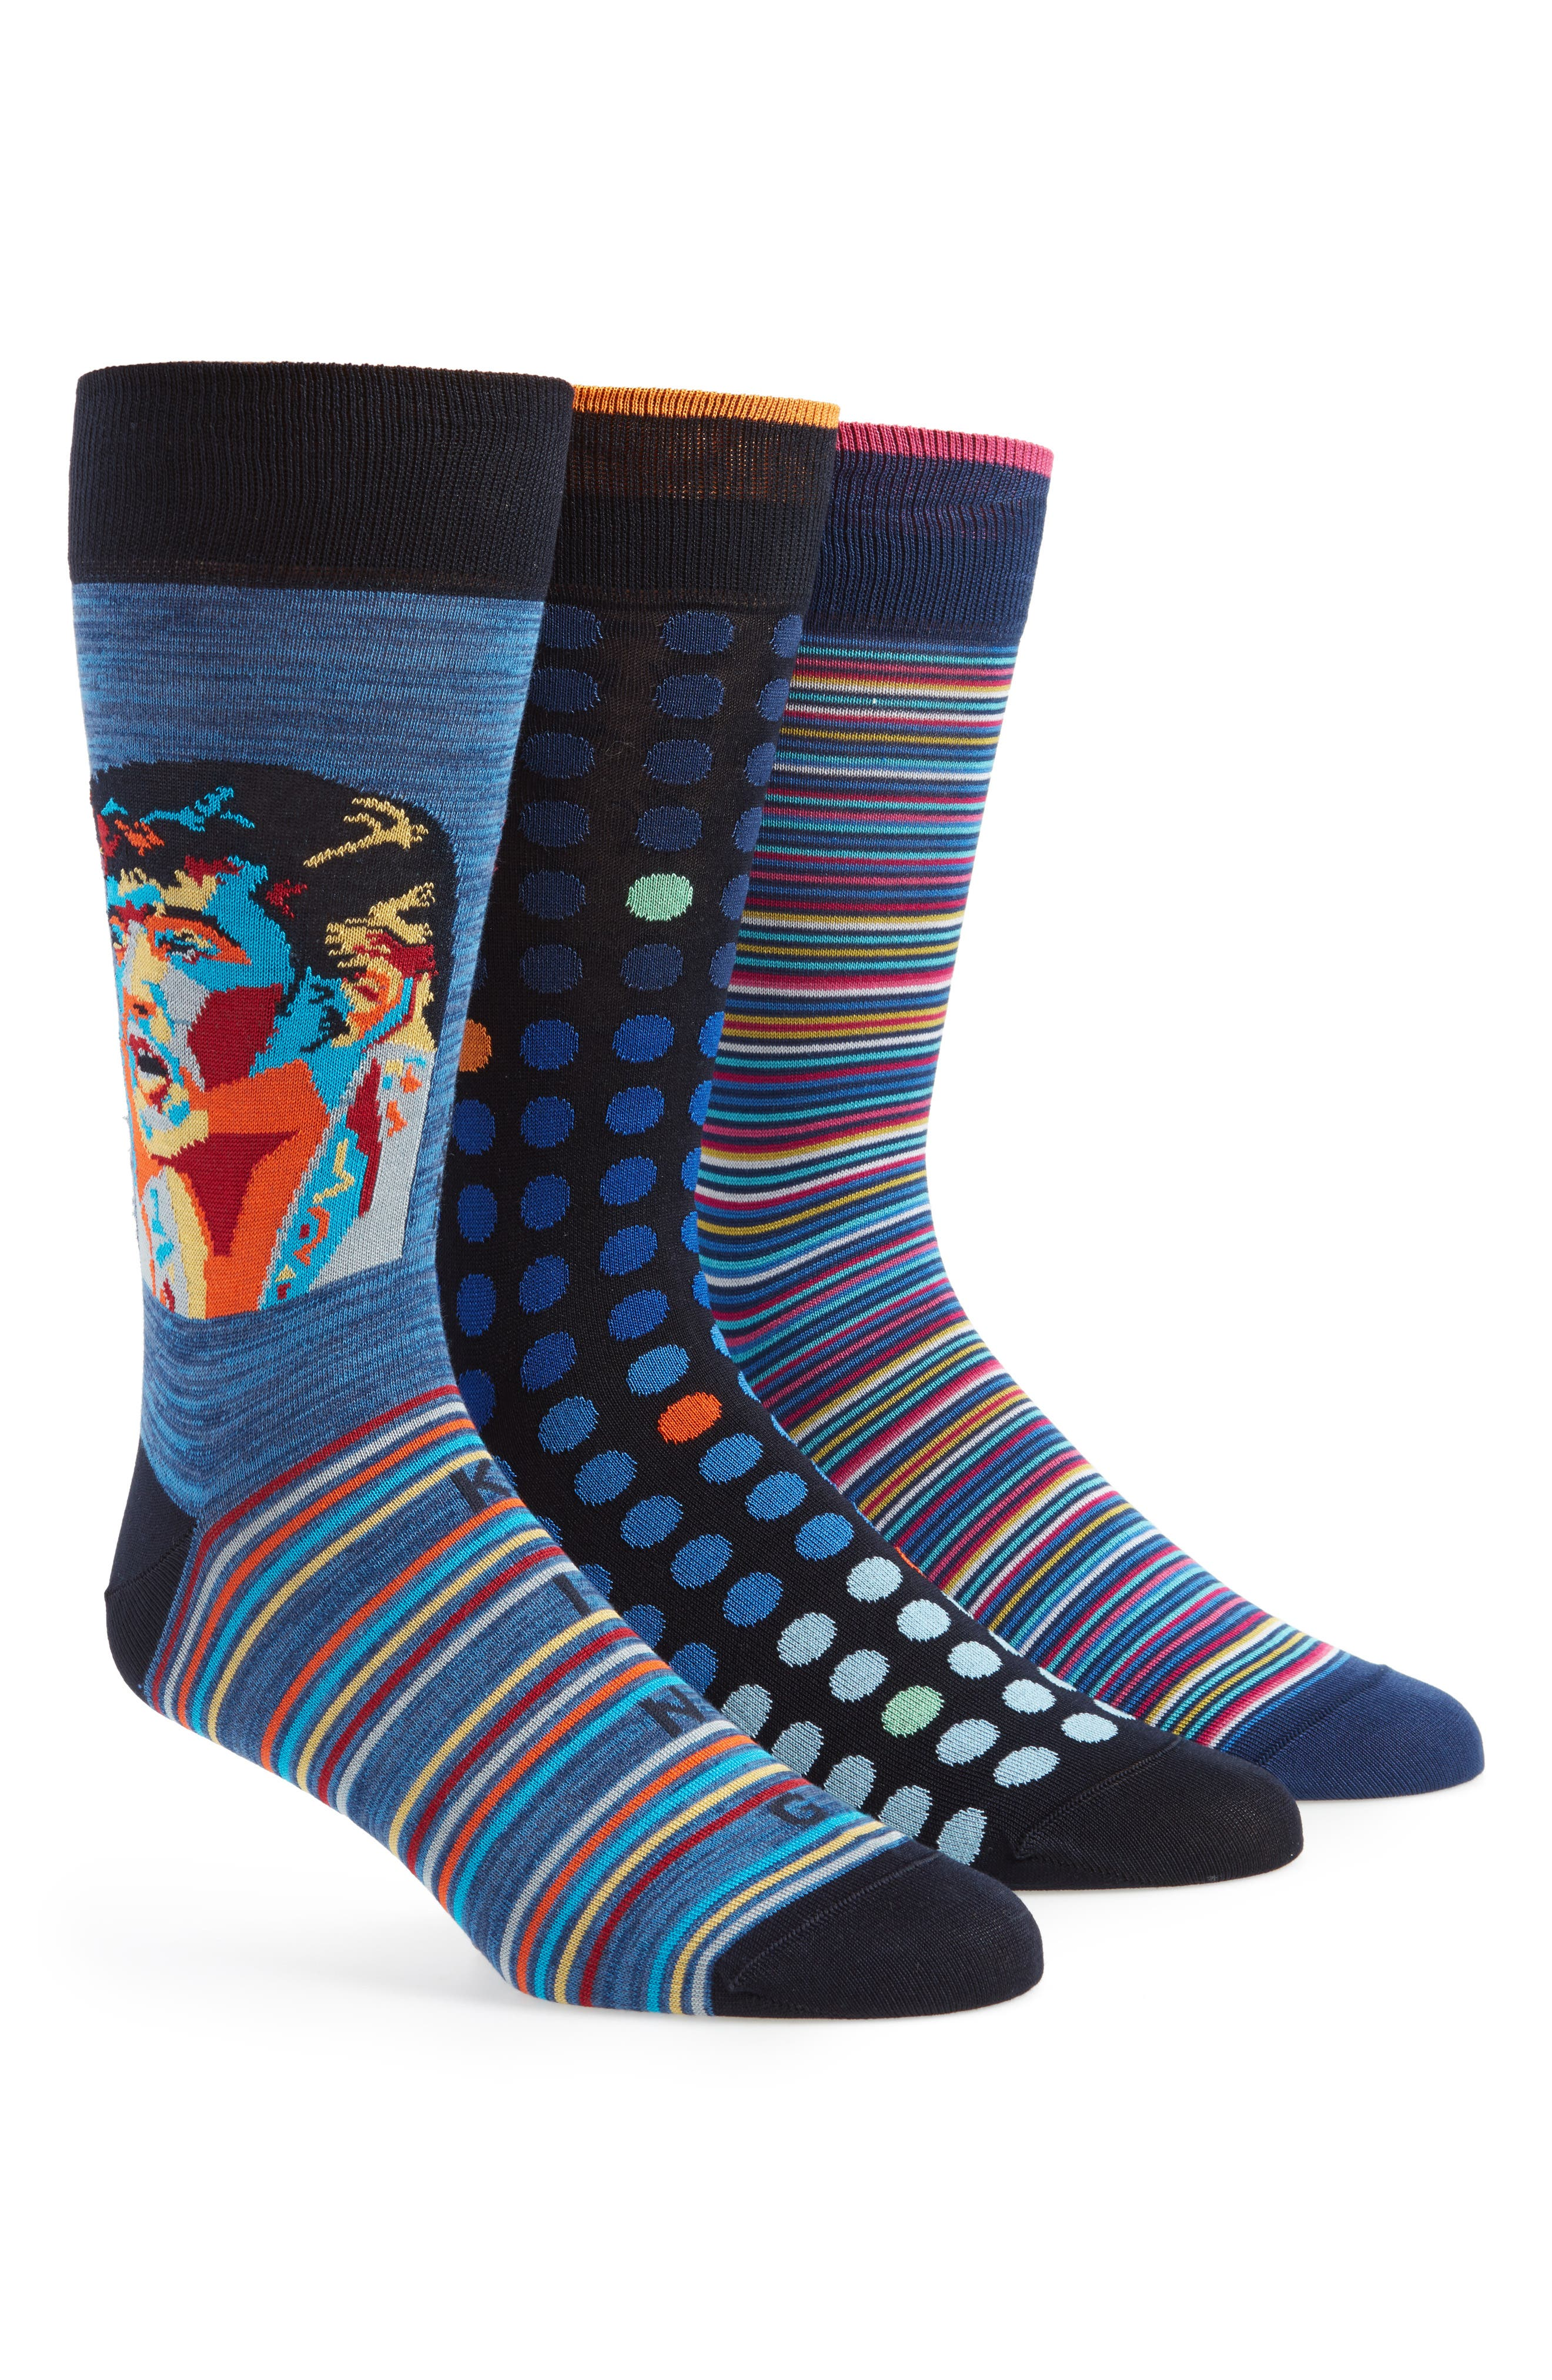 Assorted 3-Pack Mercerized Cotton Blend Sock Gift Set,                         Main,                         color, Midnight